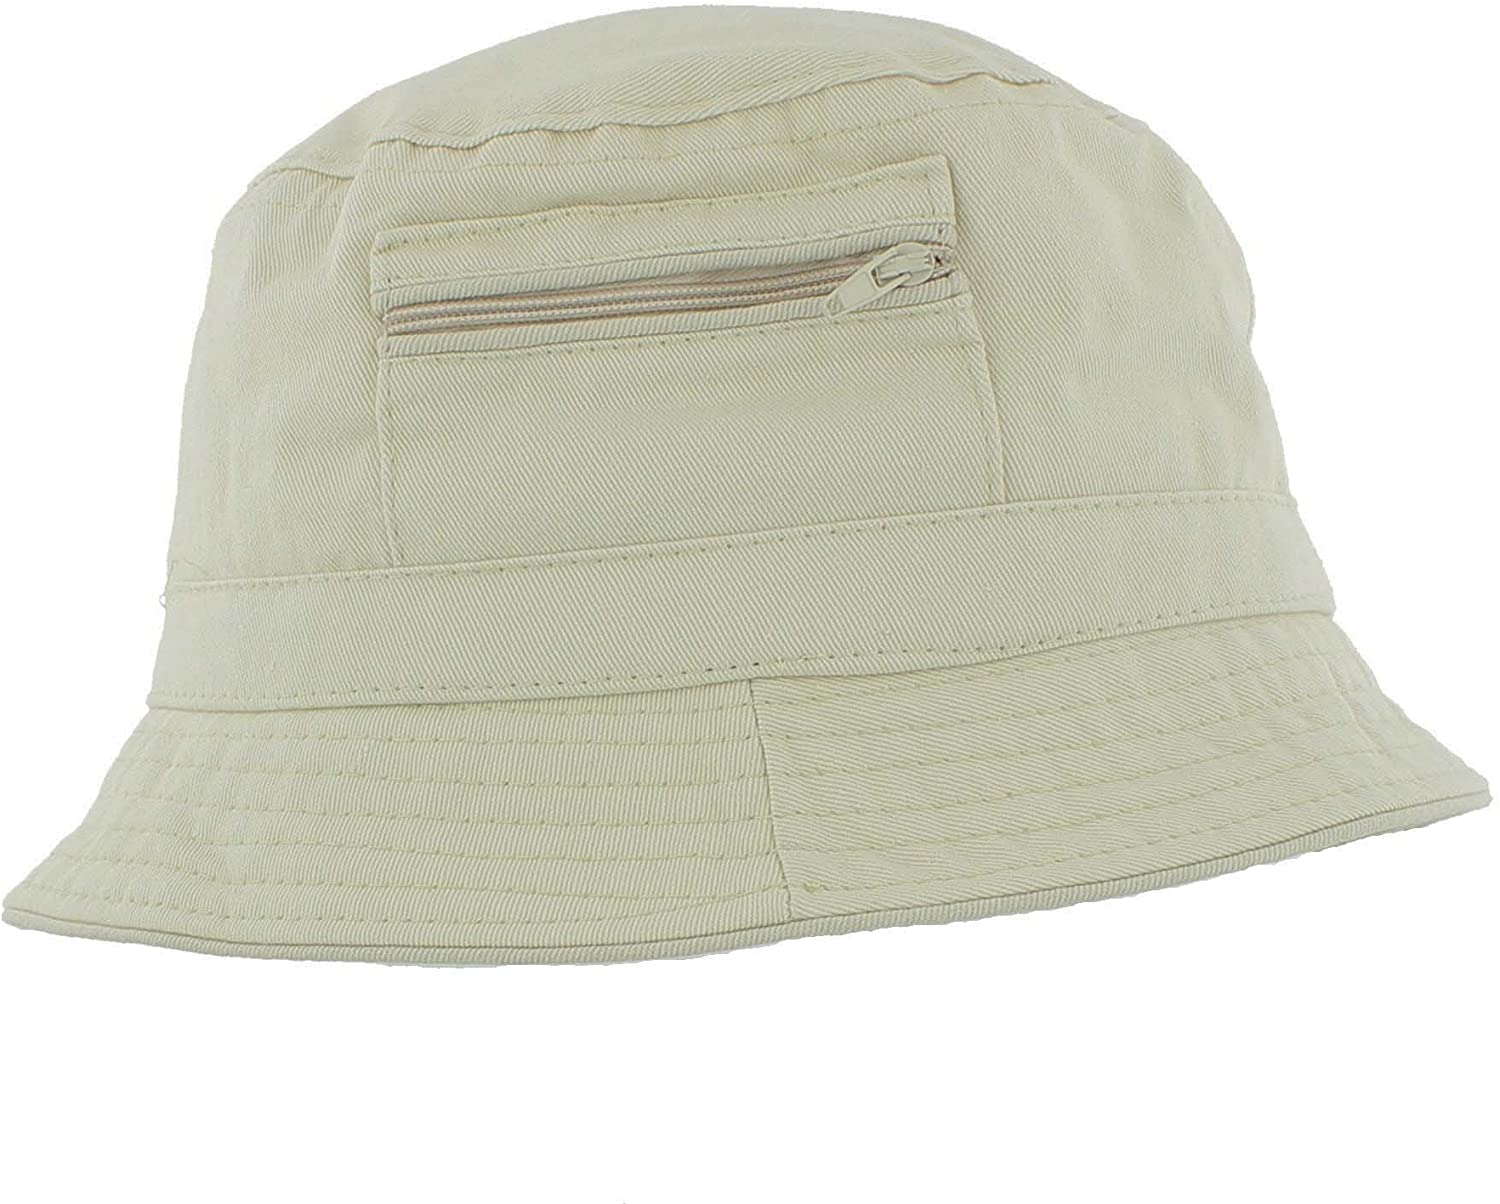 Fishing Cap 2 Pockets Included Bucket Hat Breiter Fishermans Hat 100/% Cotton Foldable and Washable